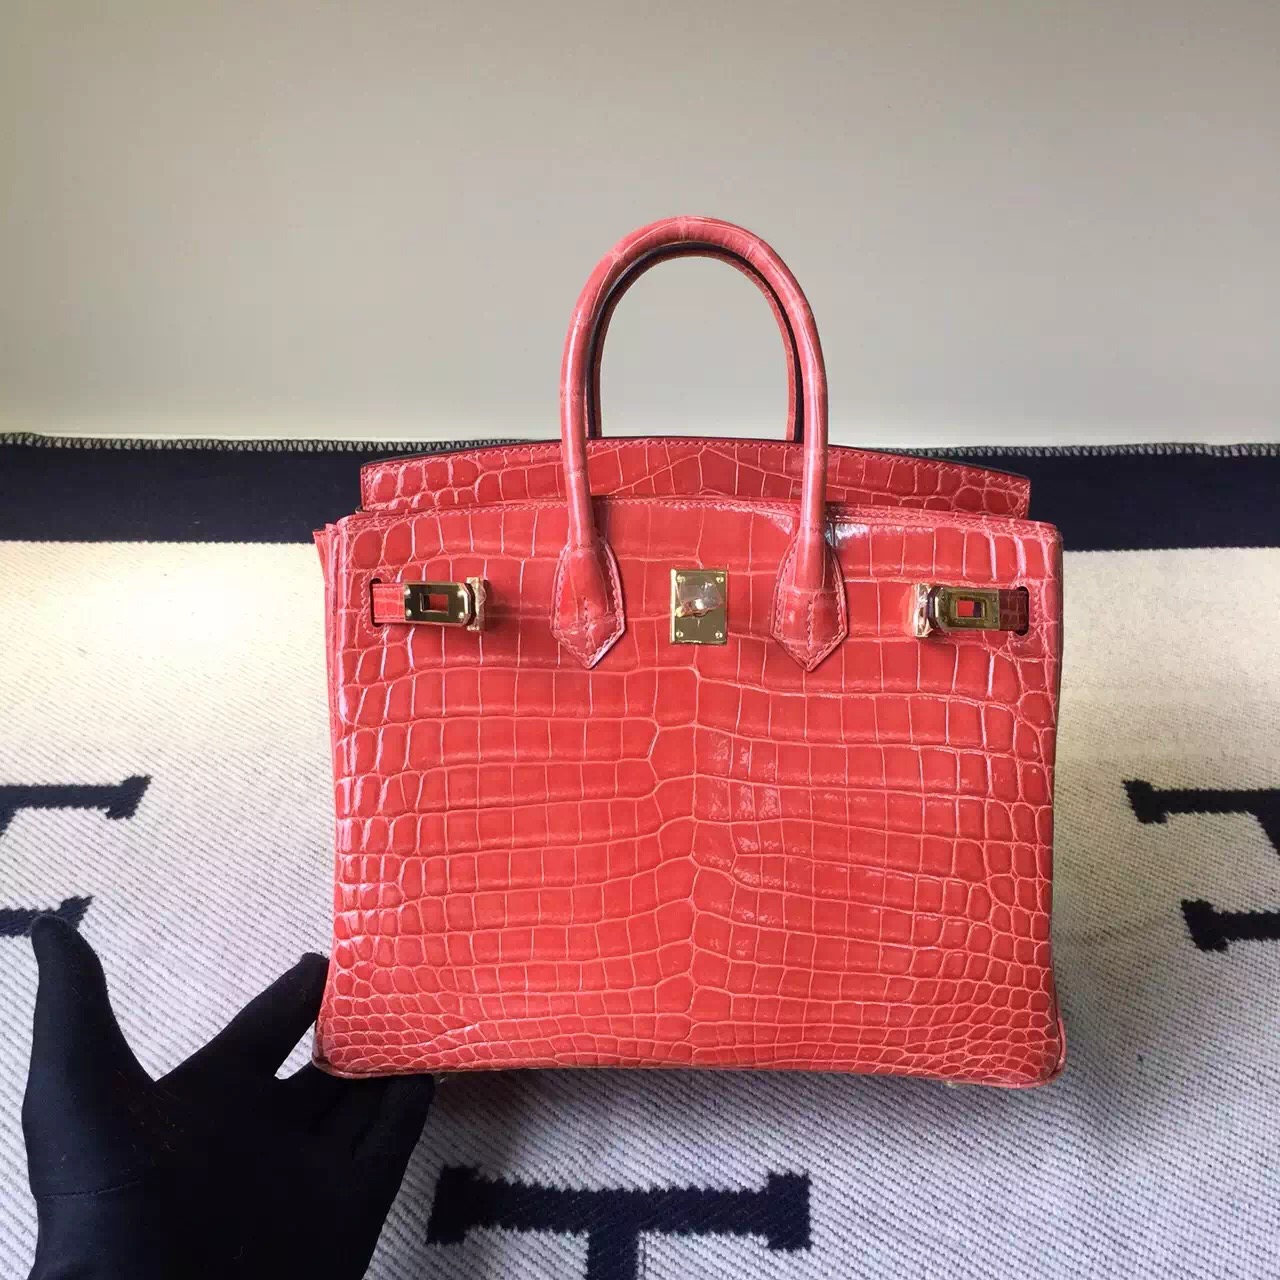 Hermes I5 Flamingo Crocodile Shiny Leather Birkin Bag 25cm